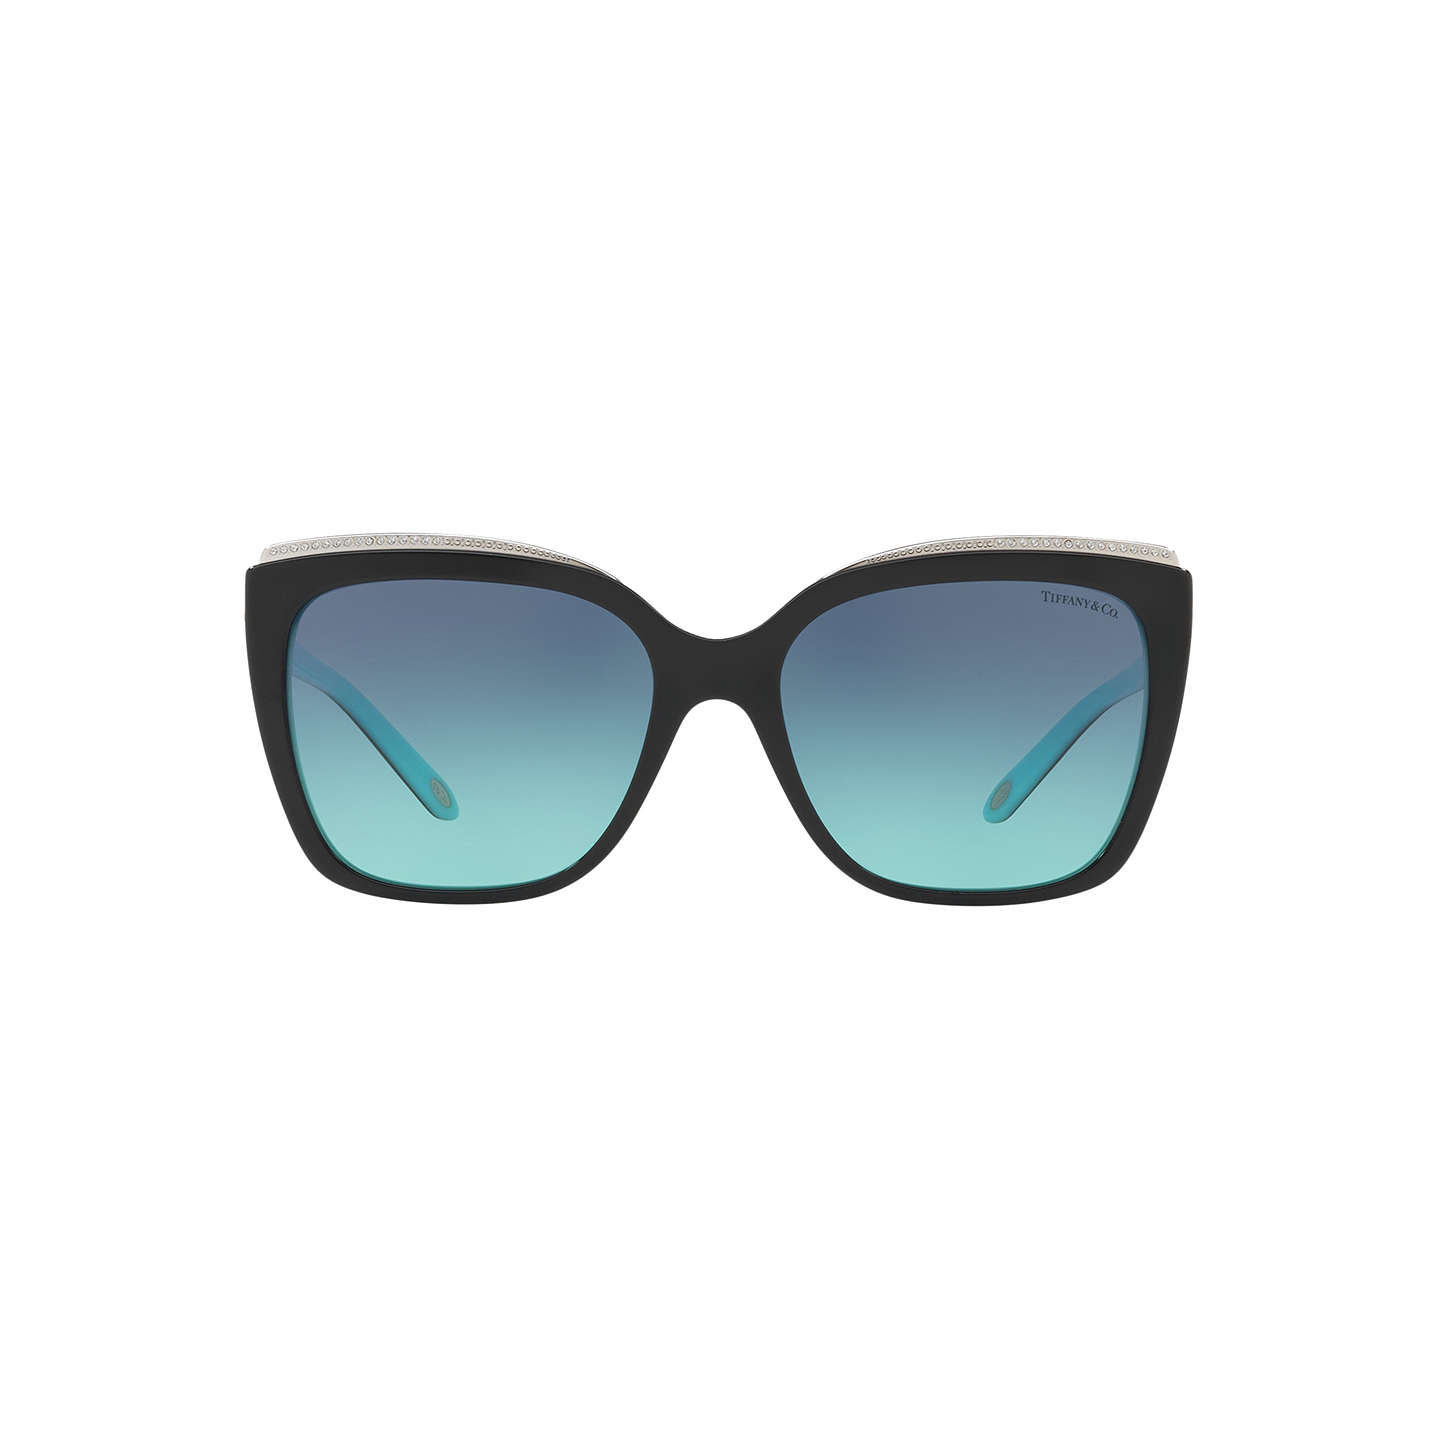 BuyTiffany & Co TF4135B Oversize Square Sunglasses, Black/Blue Gradient Online at johnlewis.com